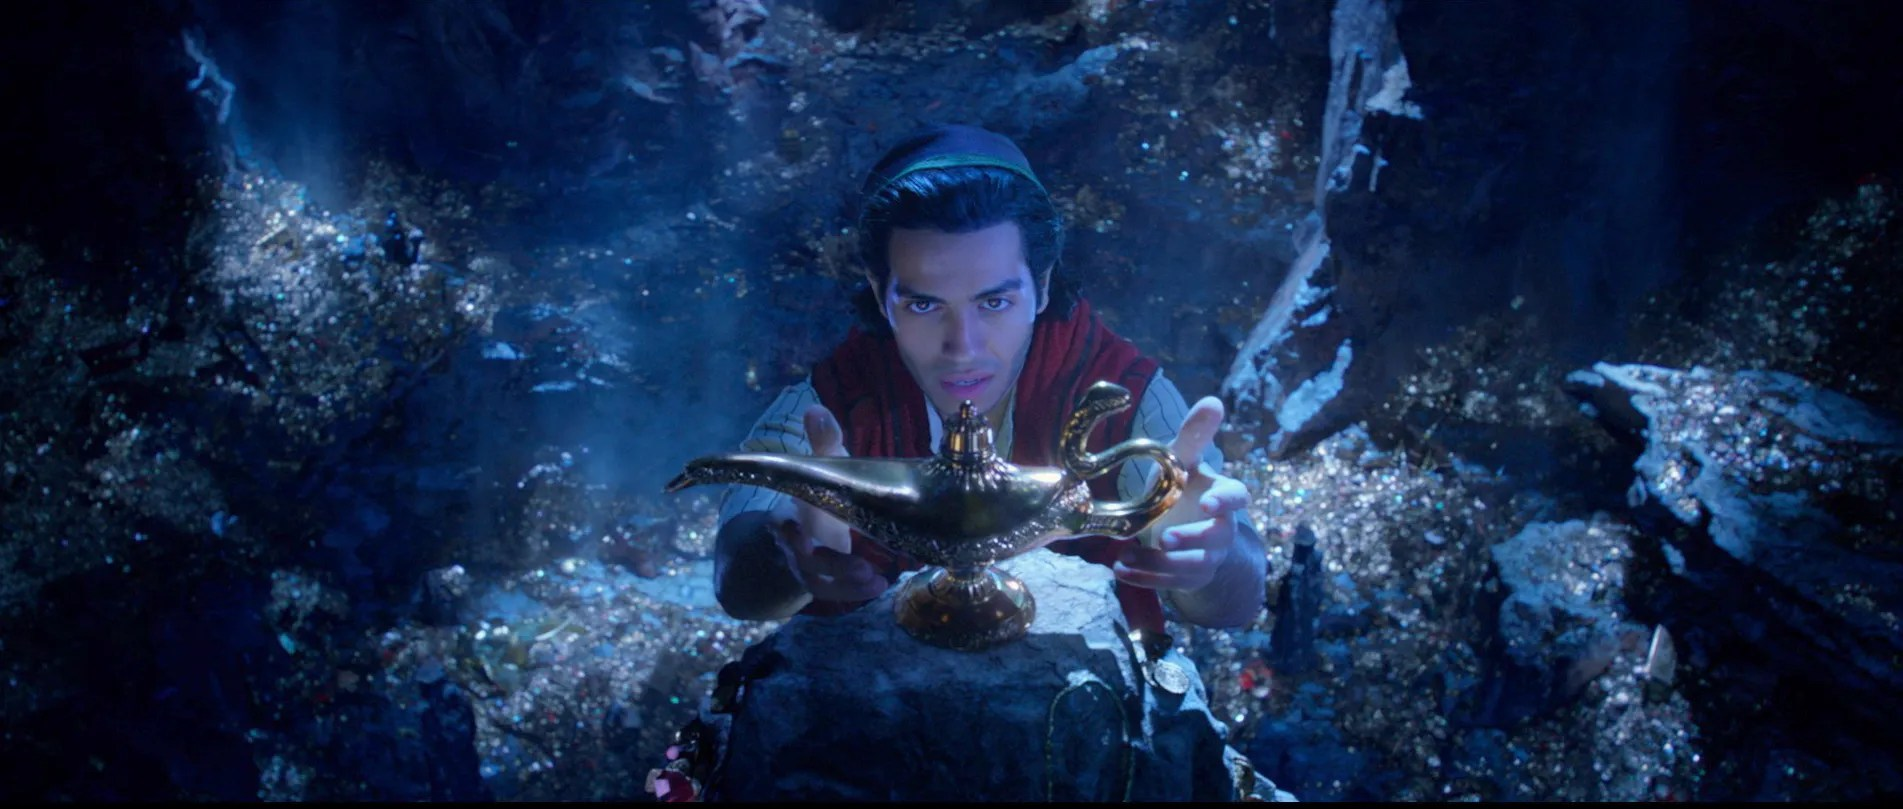 Upcoming Live-Action Disney Movies: From Aladdin to Mulan ...